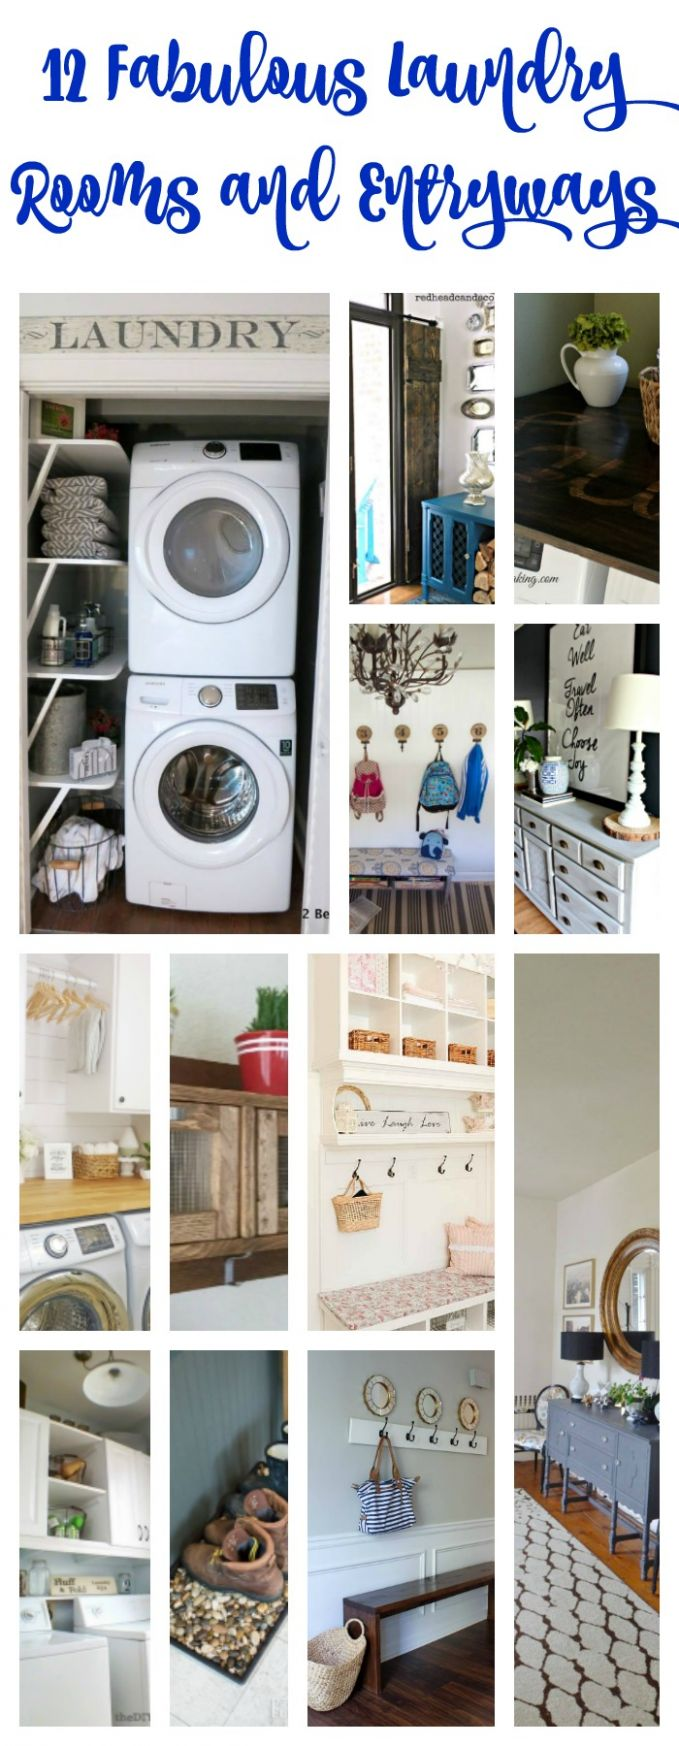 10 Laundry Room and Entry Ideas - DIY Housewives Series - 10 Bees ...